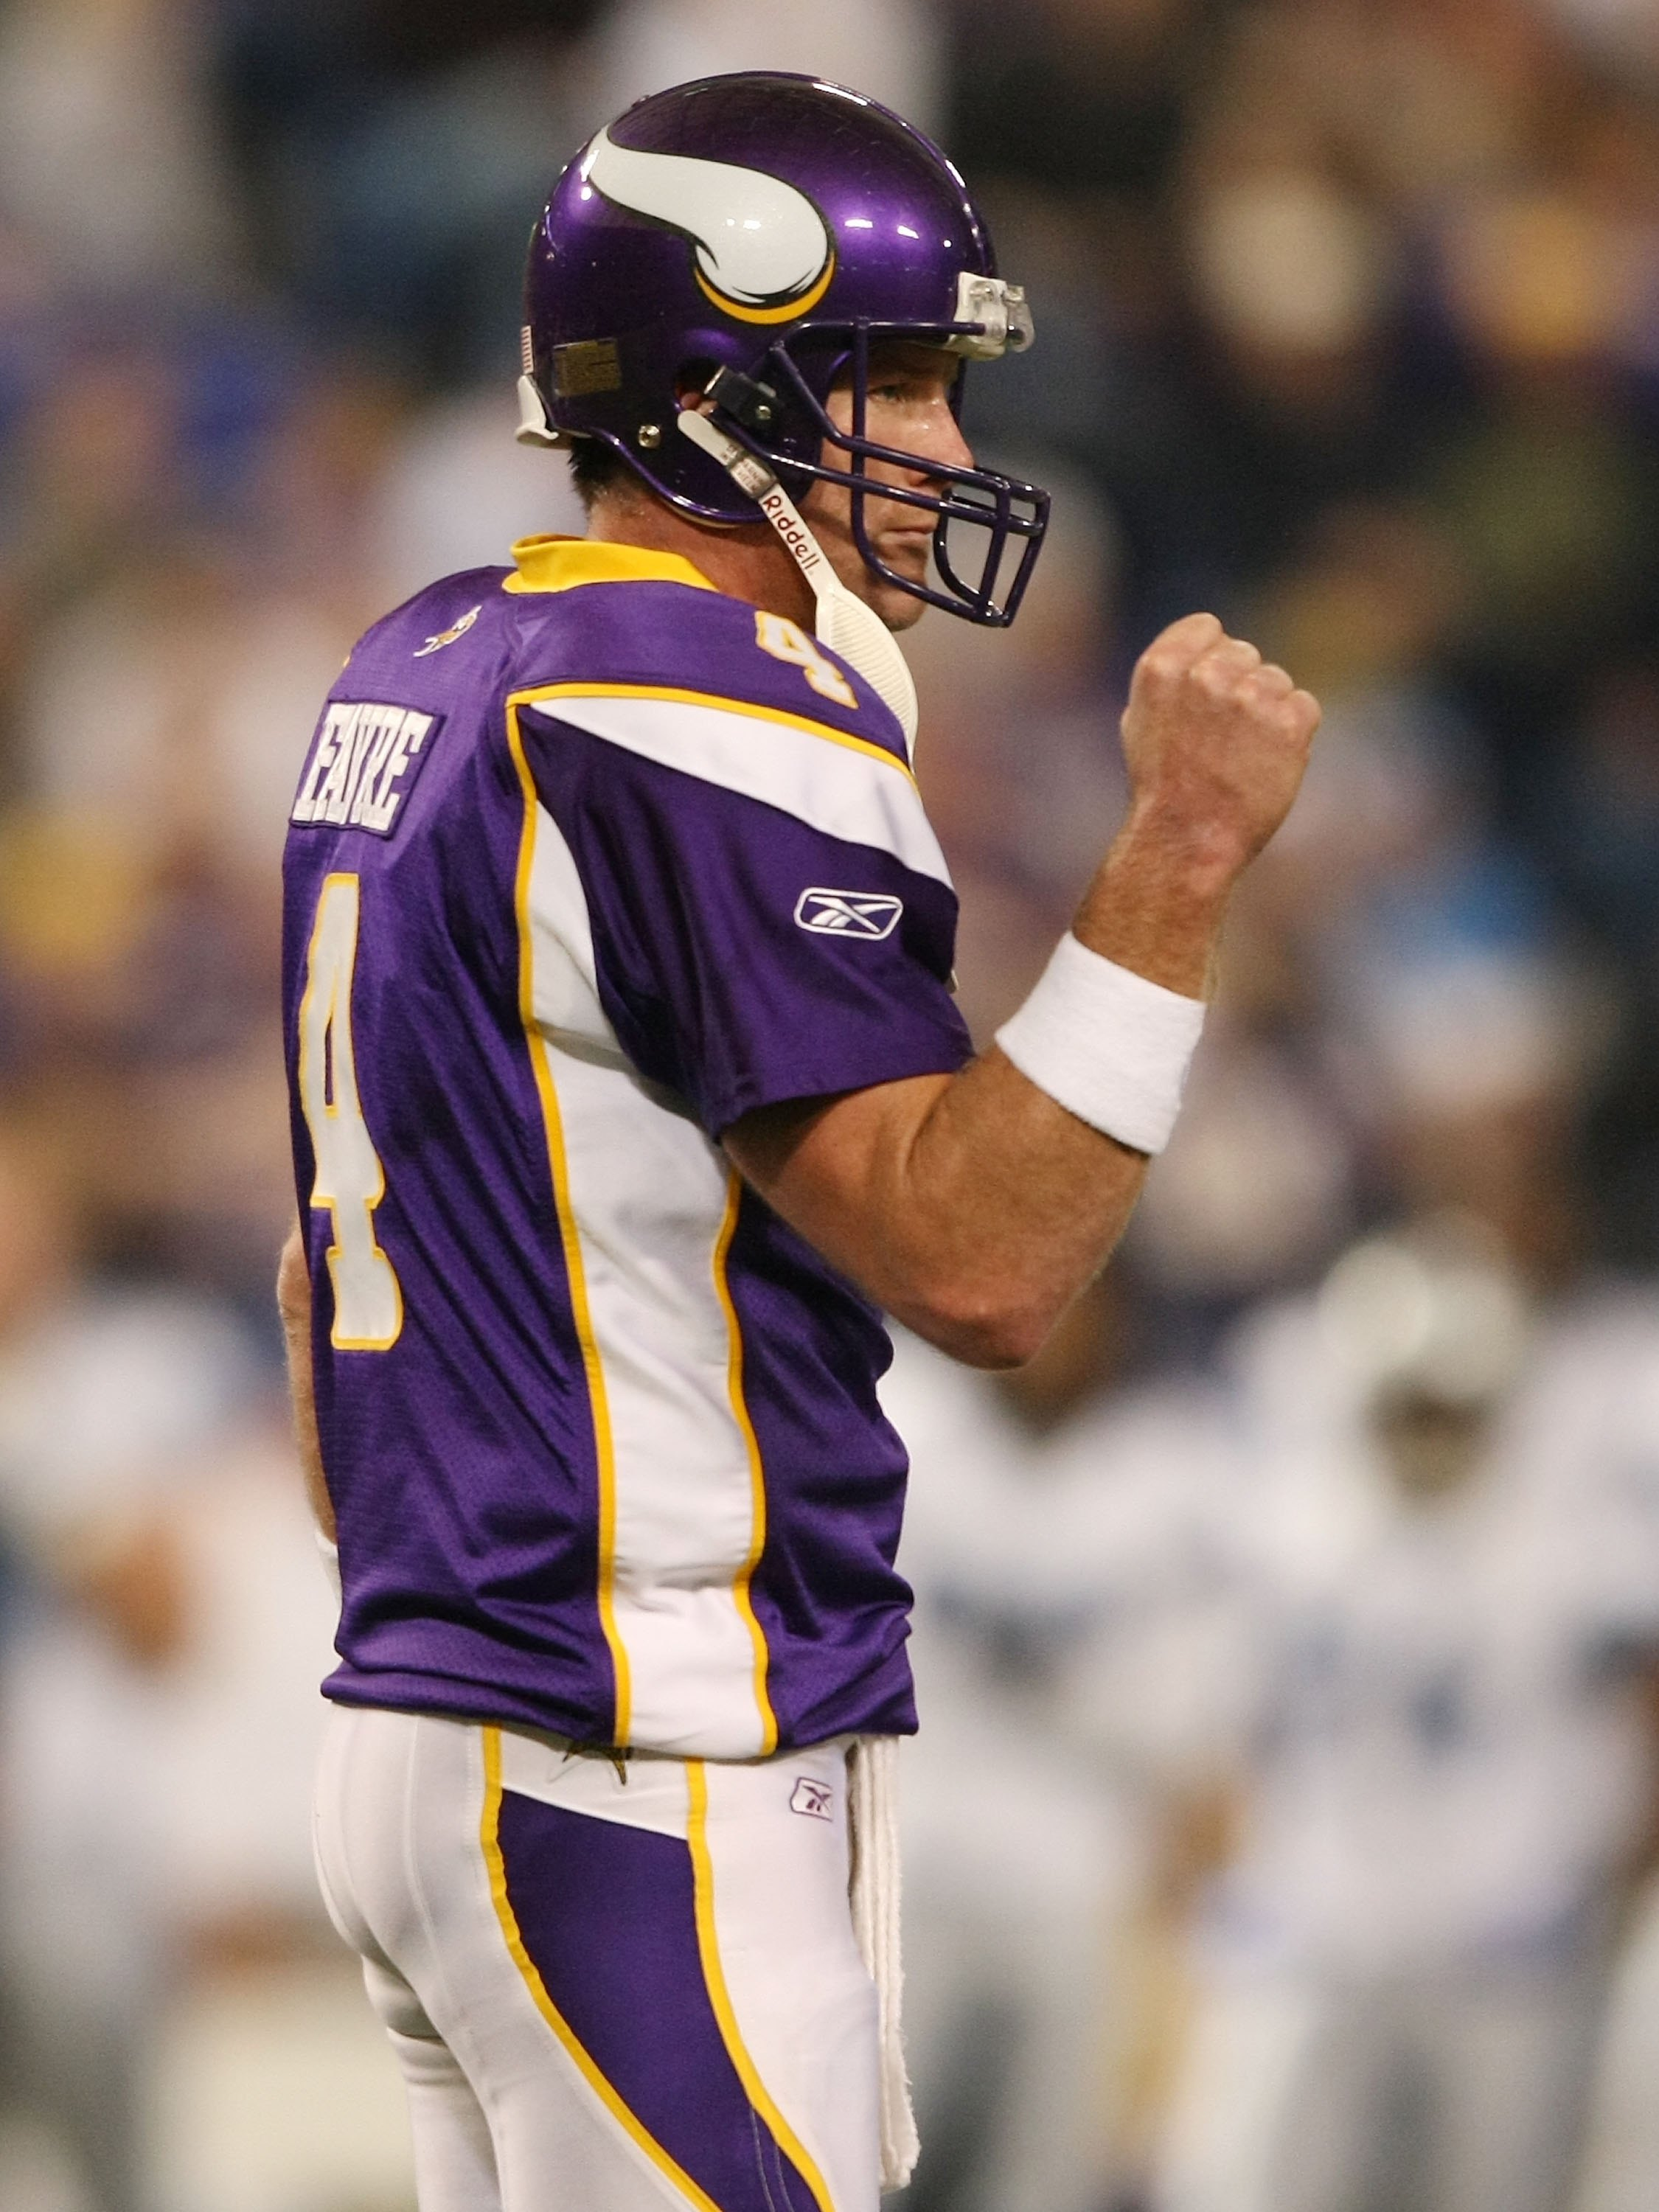 MINNEAPOLIS - NOVEMBER 15:  Brett Favre #4 of the Minnesota Vikings celebrates a first down in the fourth quarter against the Detroit Lions on November 15, 2009 at Hubert H. Humphrey Metrodome in Minneapolis, Minnesota. The Vikings defeated the Lions 27-1